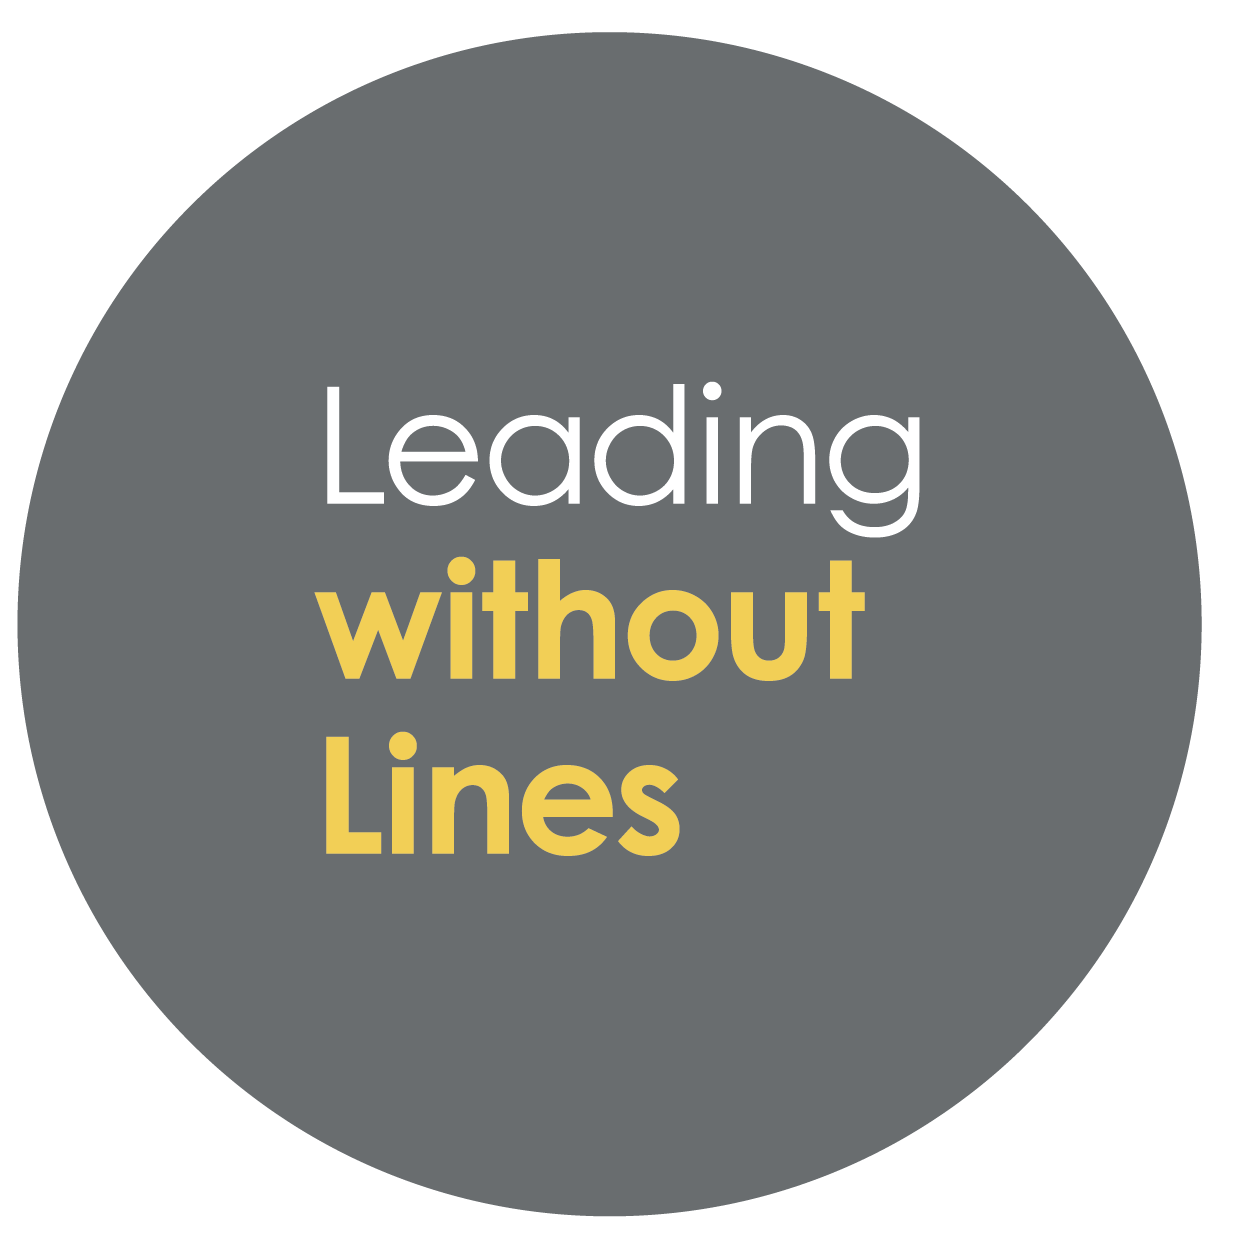 Leading without Lines